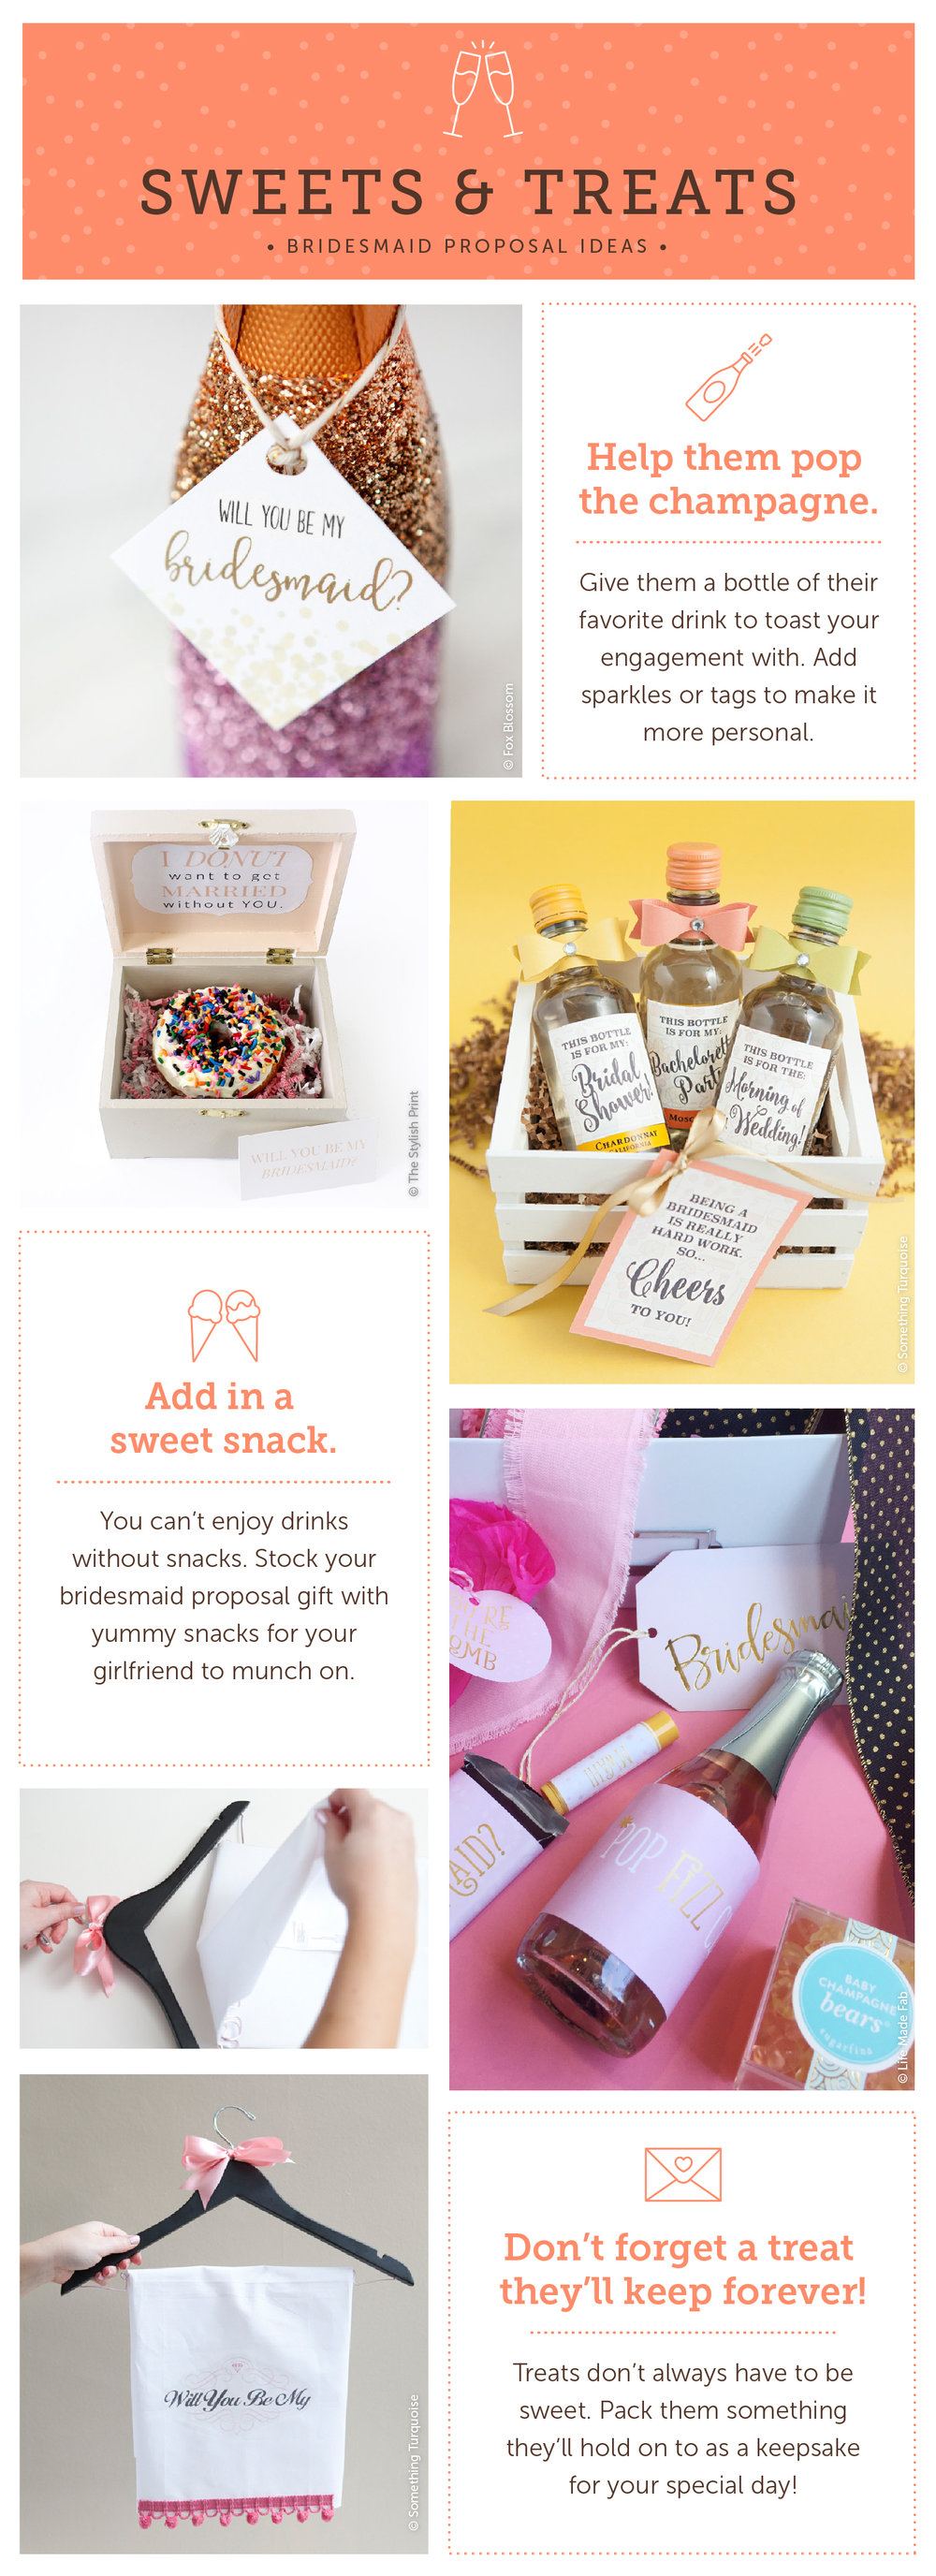 sweets-and-treats-bridesmaid-proposal-ideas.jpg